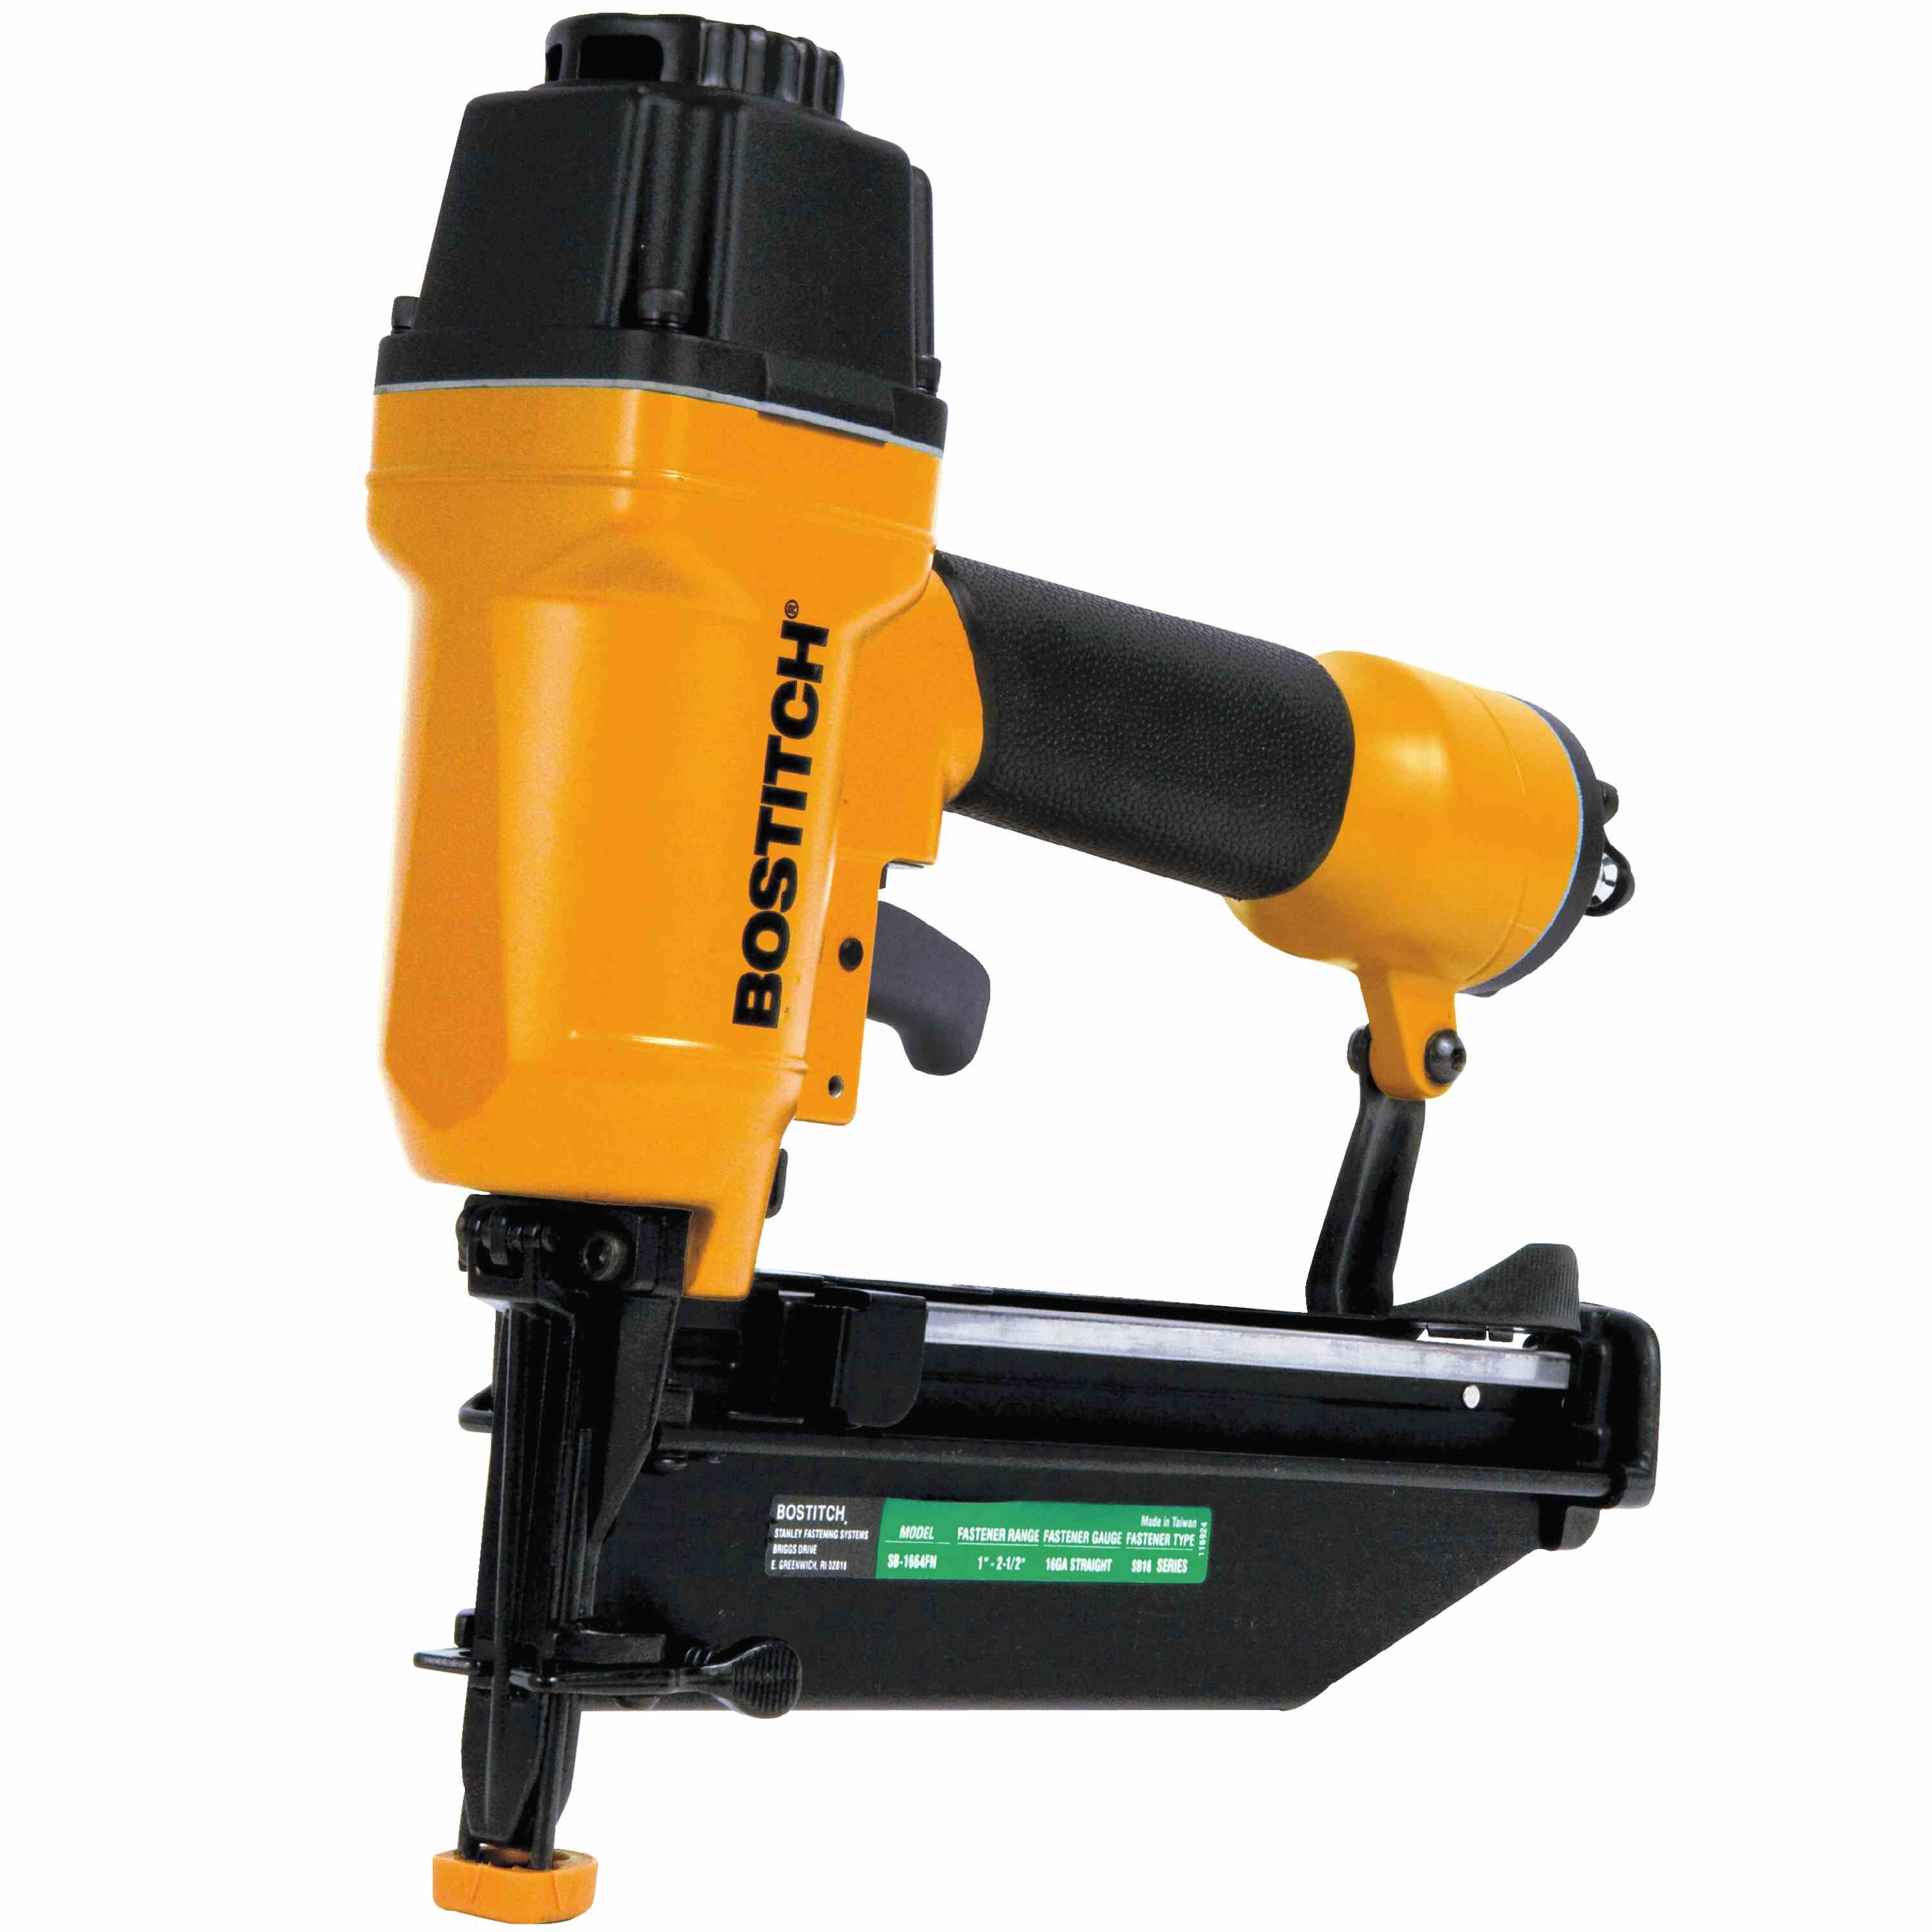 Bostitch - 16Gauge Straight Finish Nailer Kit - SB-1664FN